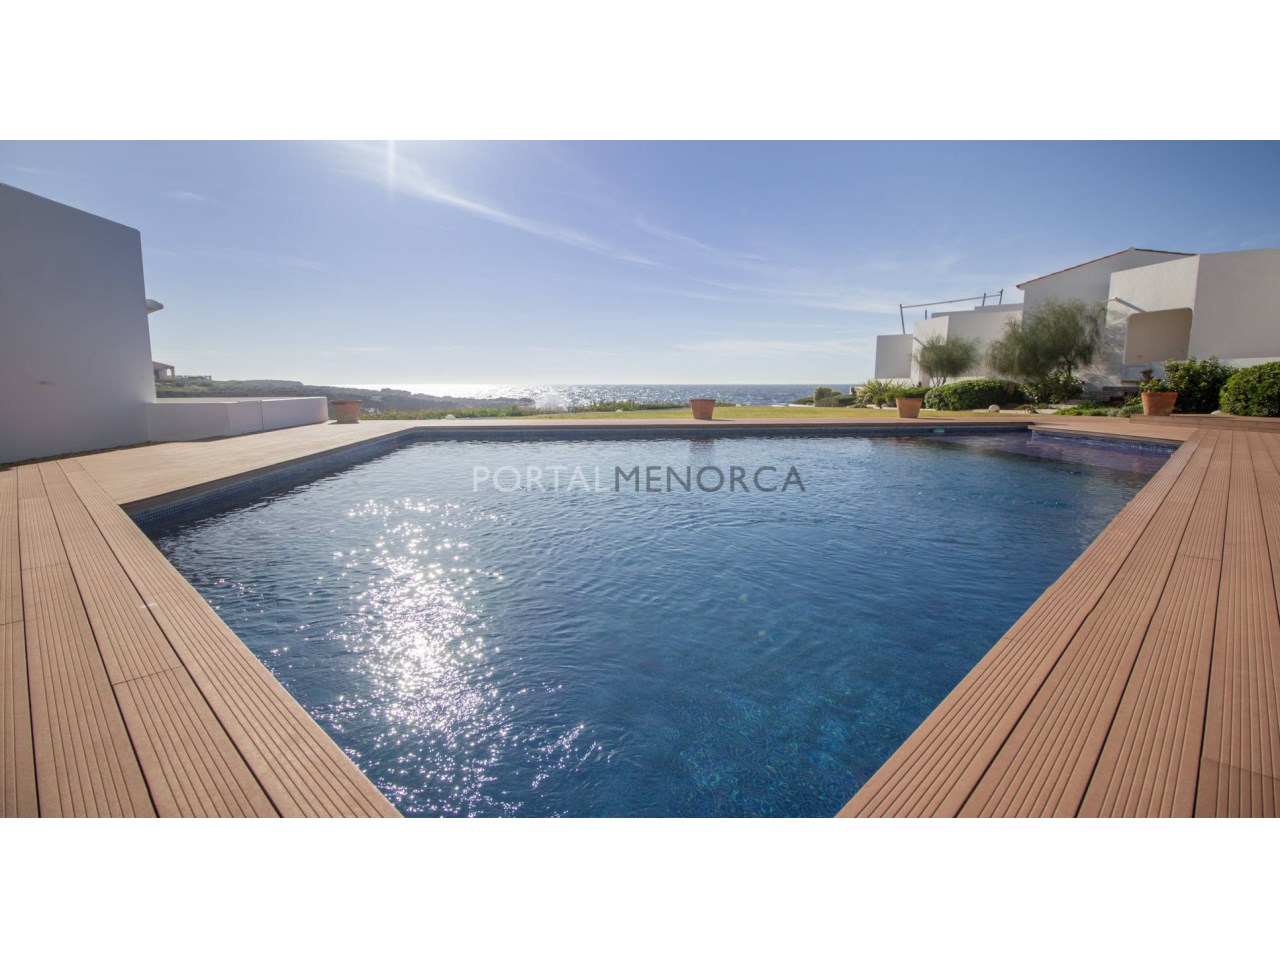 Frontline house with sea view and comunity pool for sale in Menorca